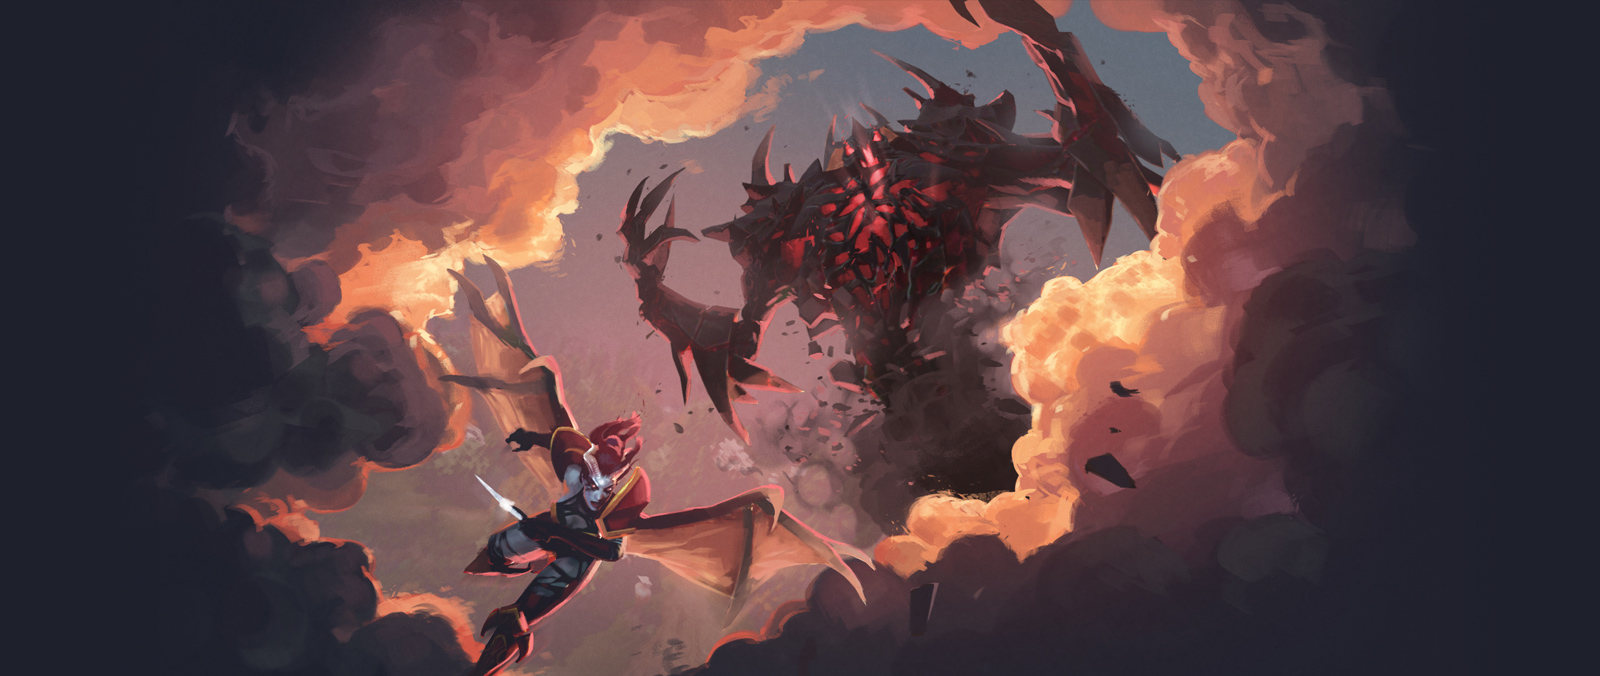 lore via artifact can be a fresh gateway into dota 2 the flying